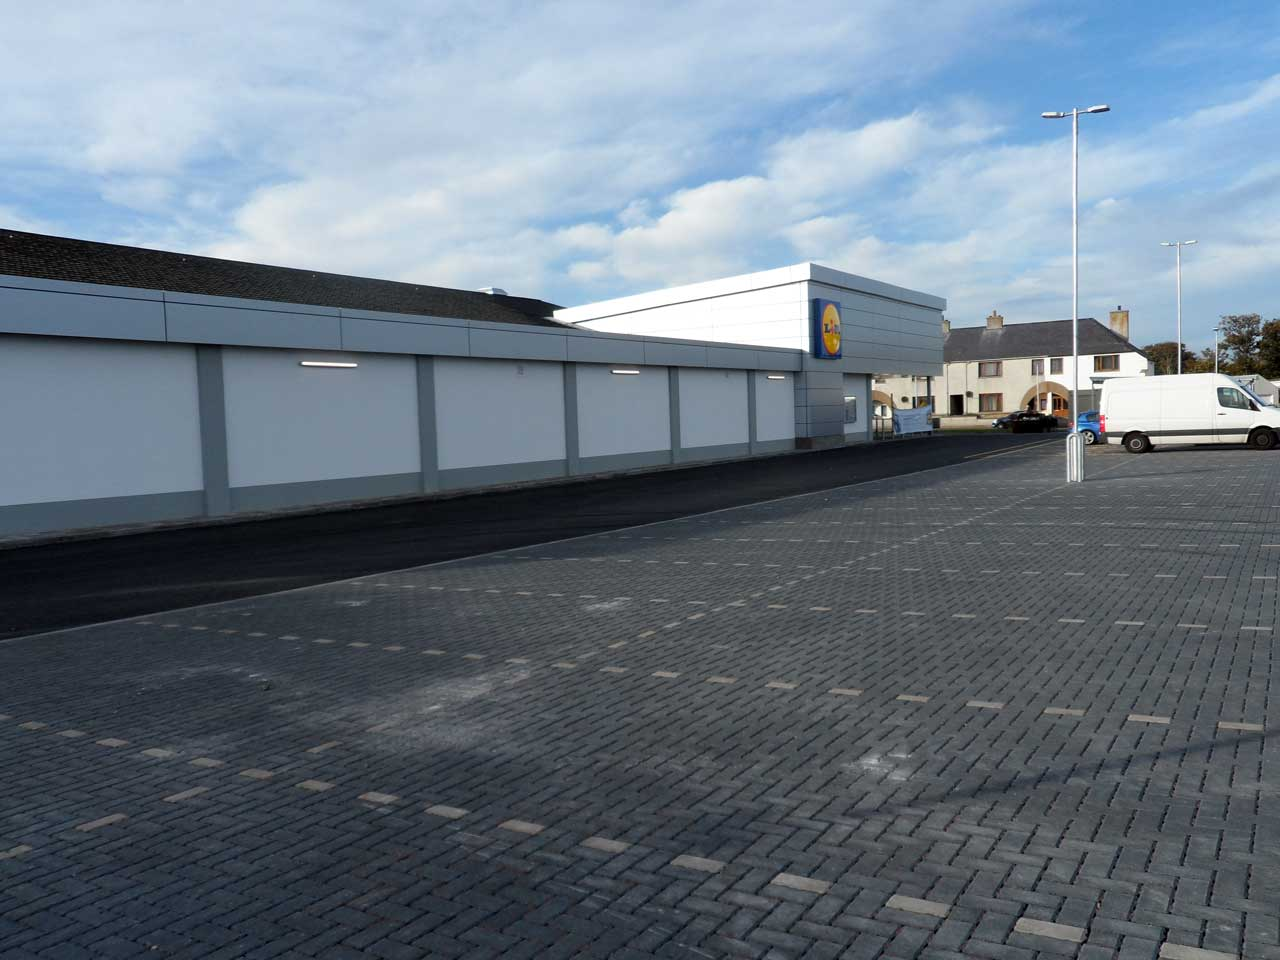 Photo: Lidl, Wick - Completed and Shelves Being Stocked - 5 October 2014